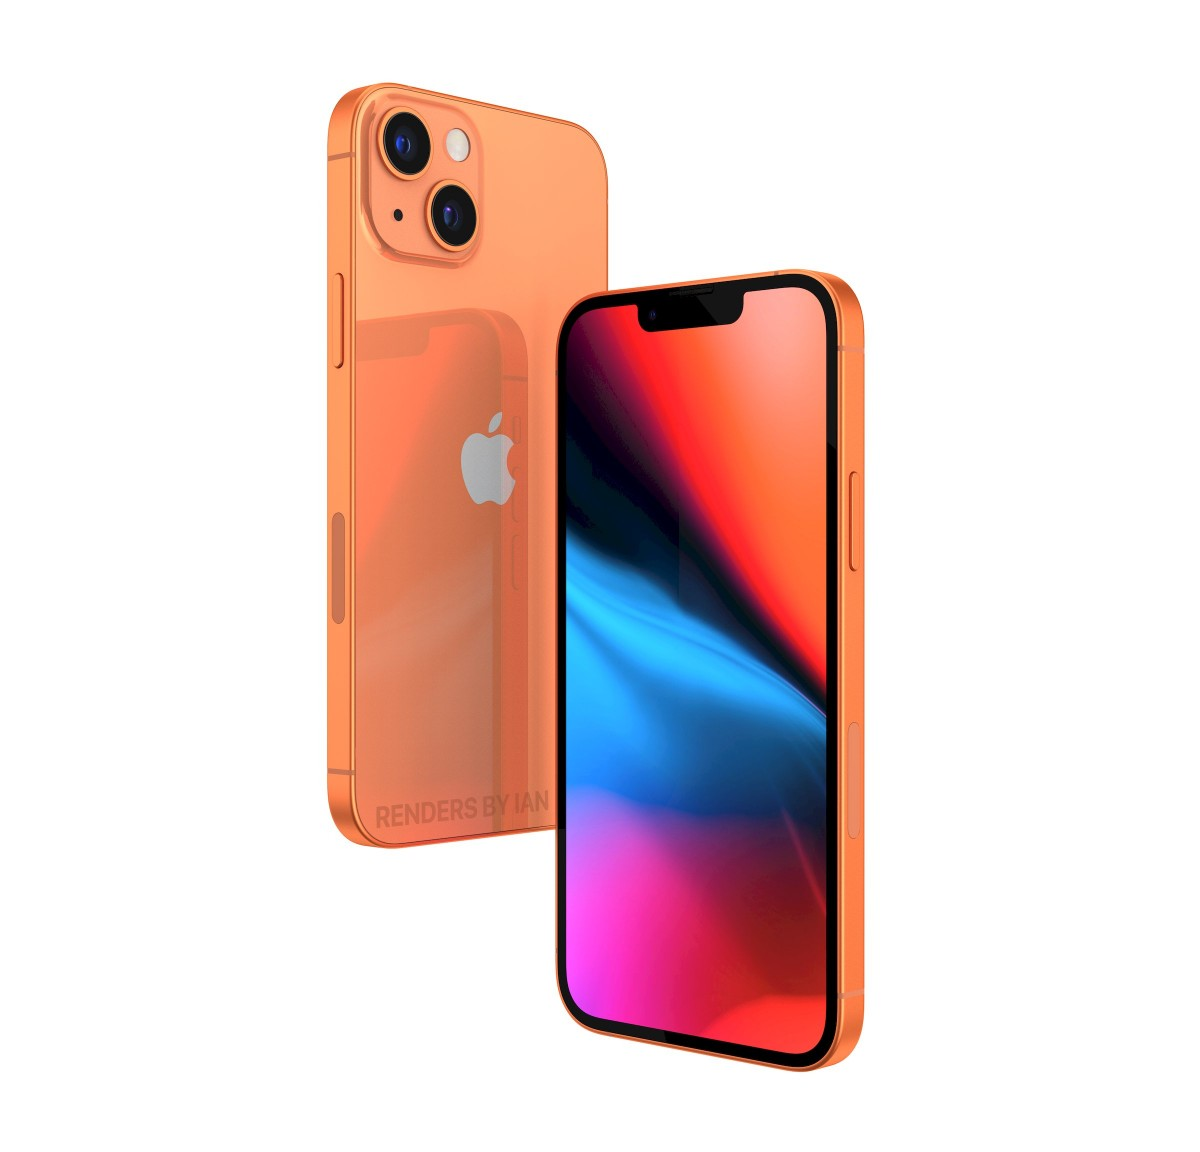 Apple iPhone 13 to add an orange color to its palette - GSMArena.com news